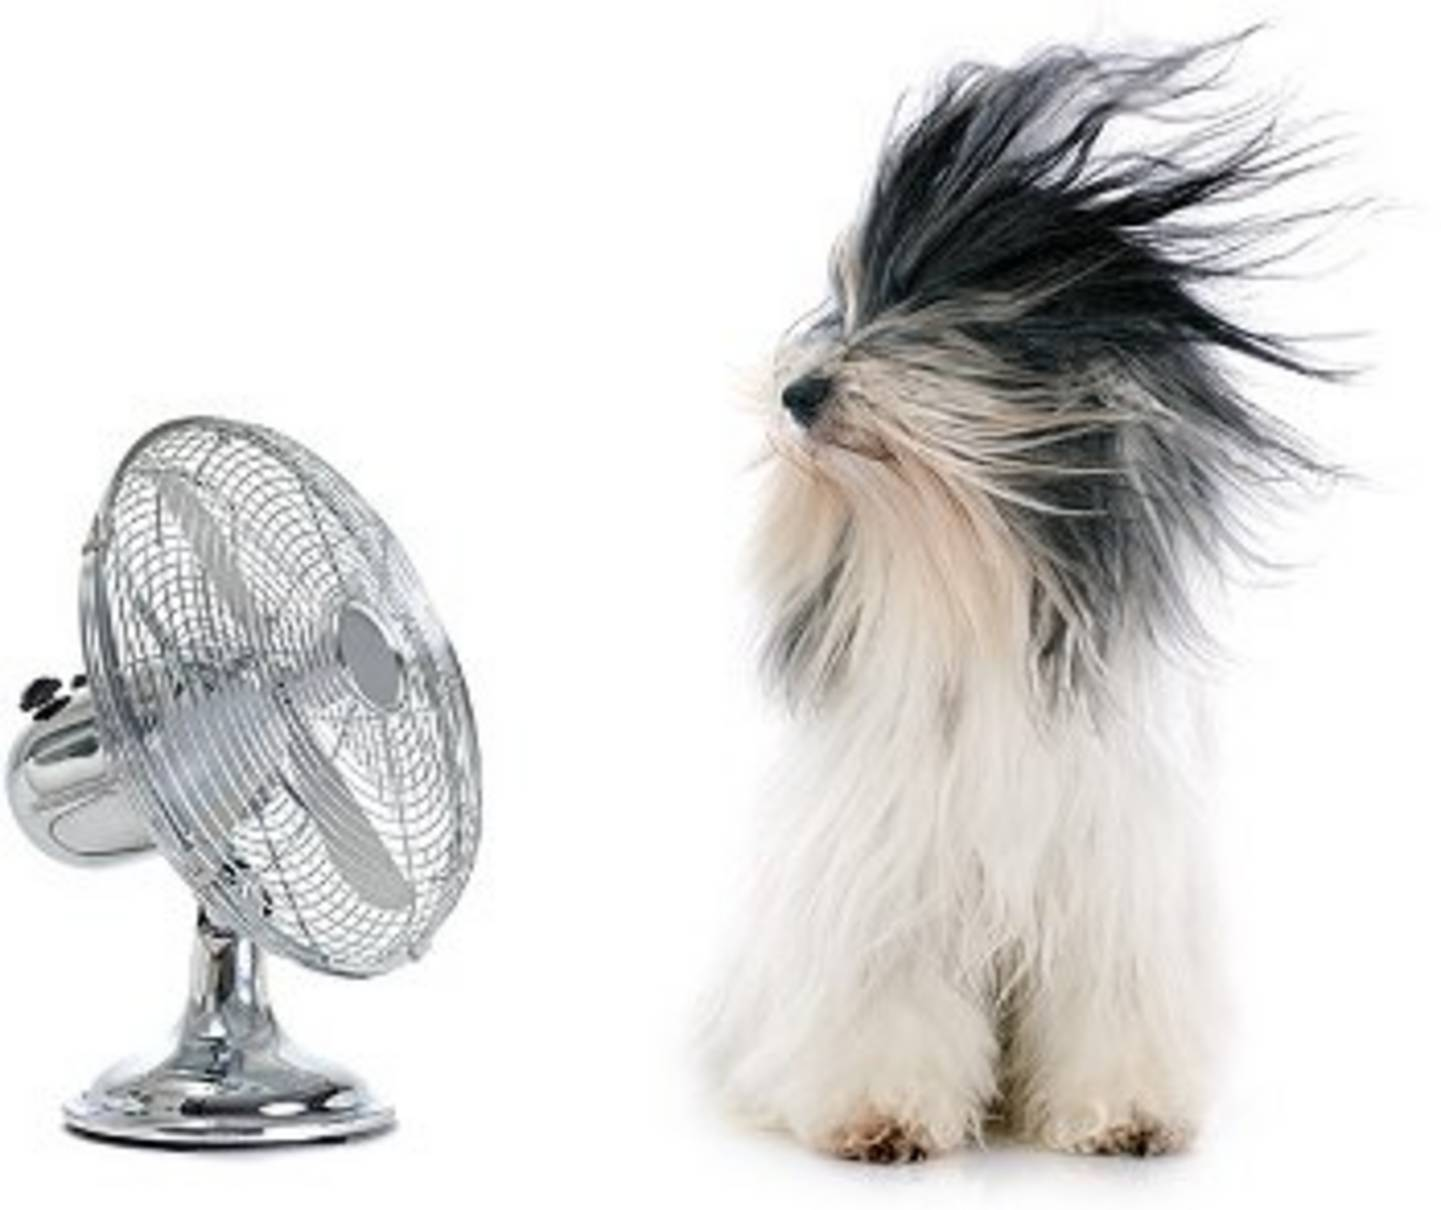 Dog in front of fan